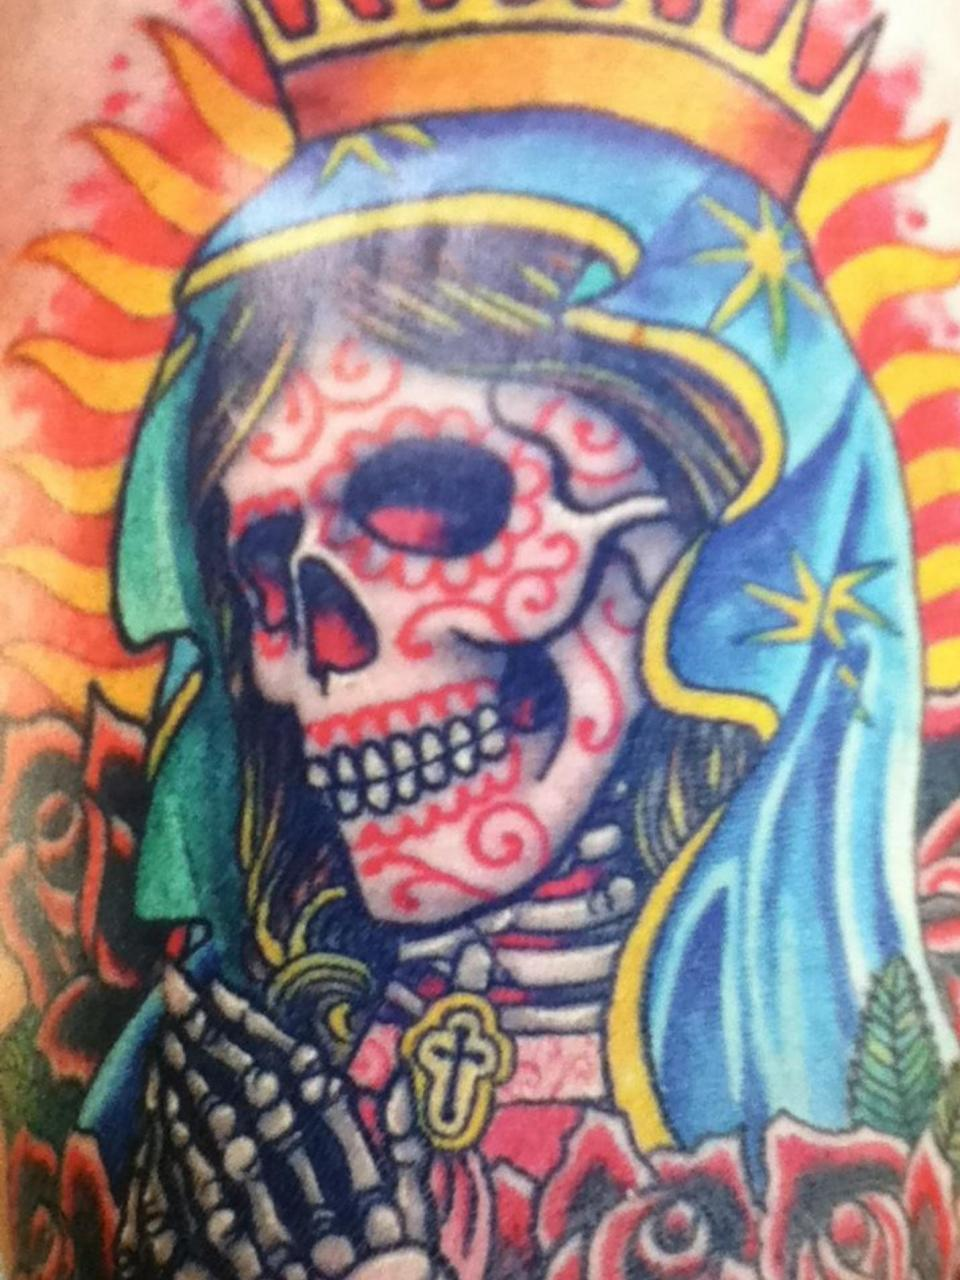 Currently looking for somebody to design a tattoo for either my outer arm or behind my calf. Looking for Sugar Skull Virgin Mary with two names underneath in a banner, willing to pay! Looking for something like below.